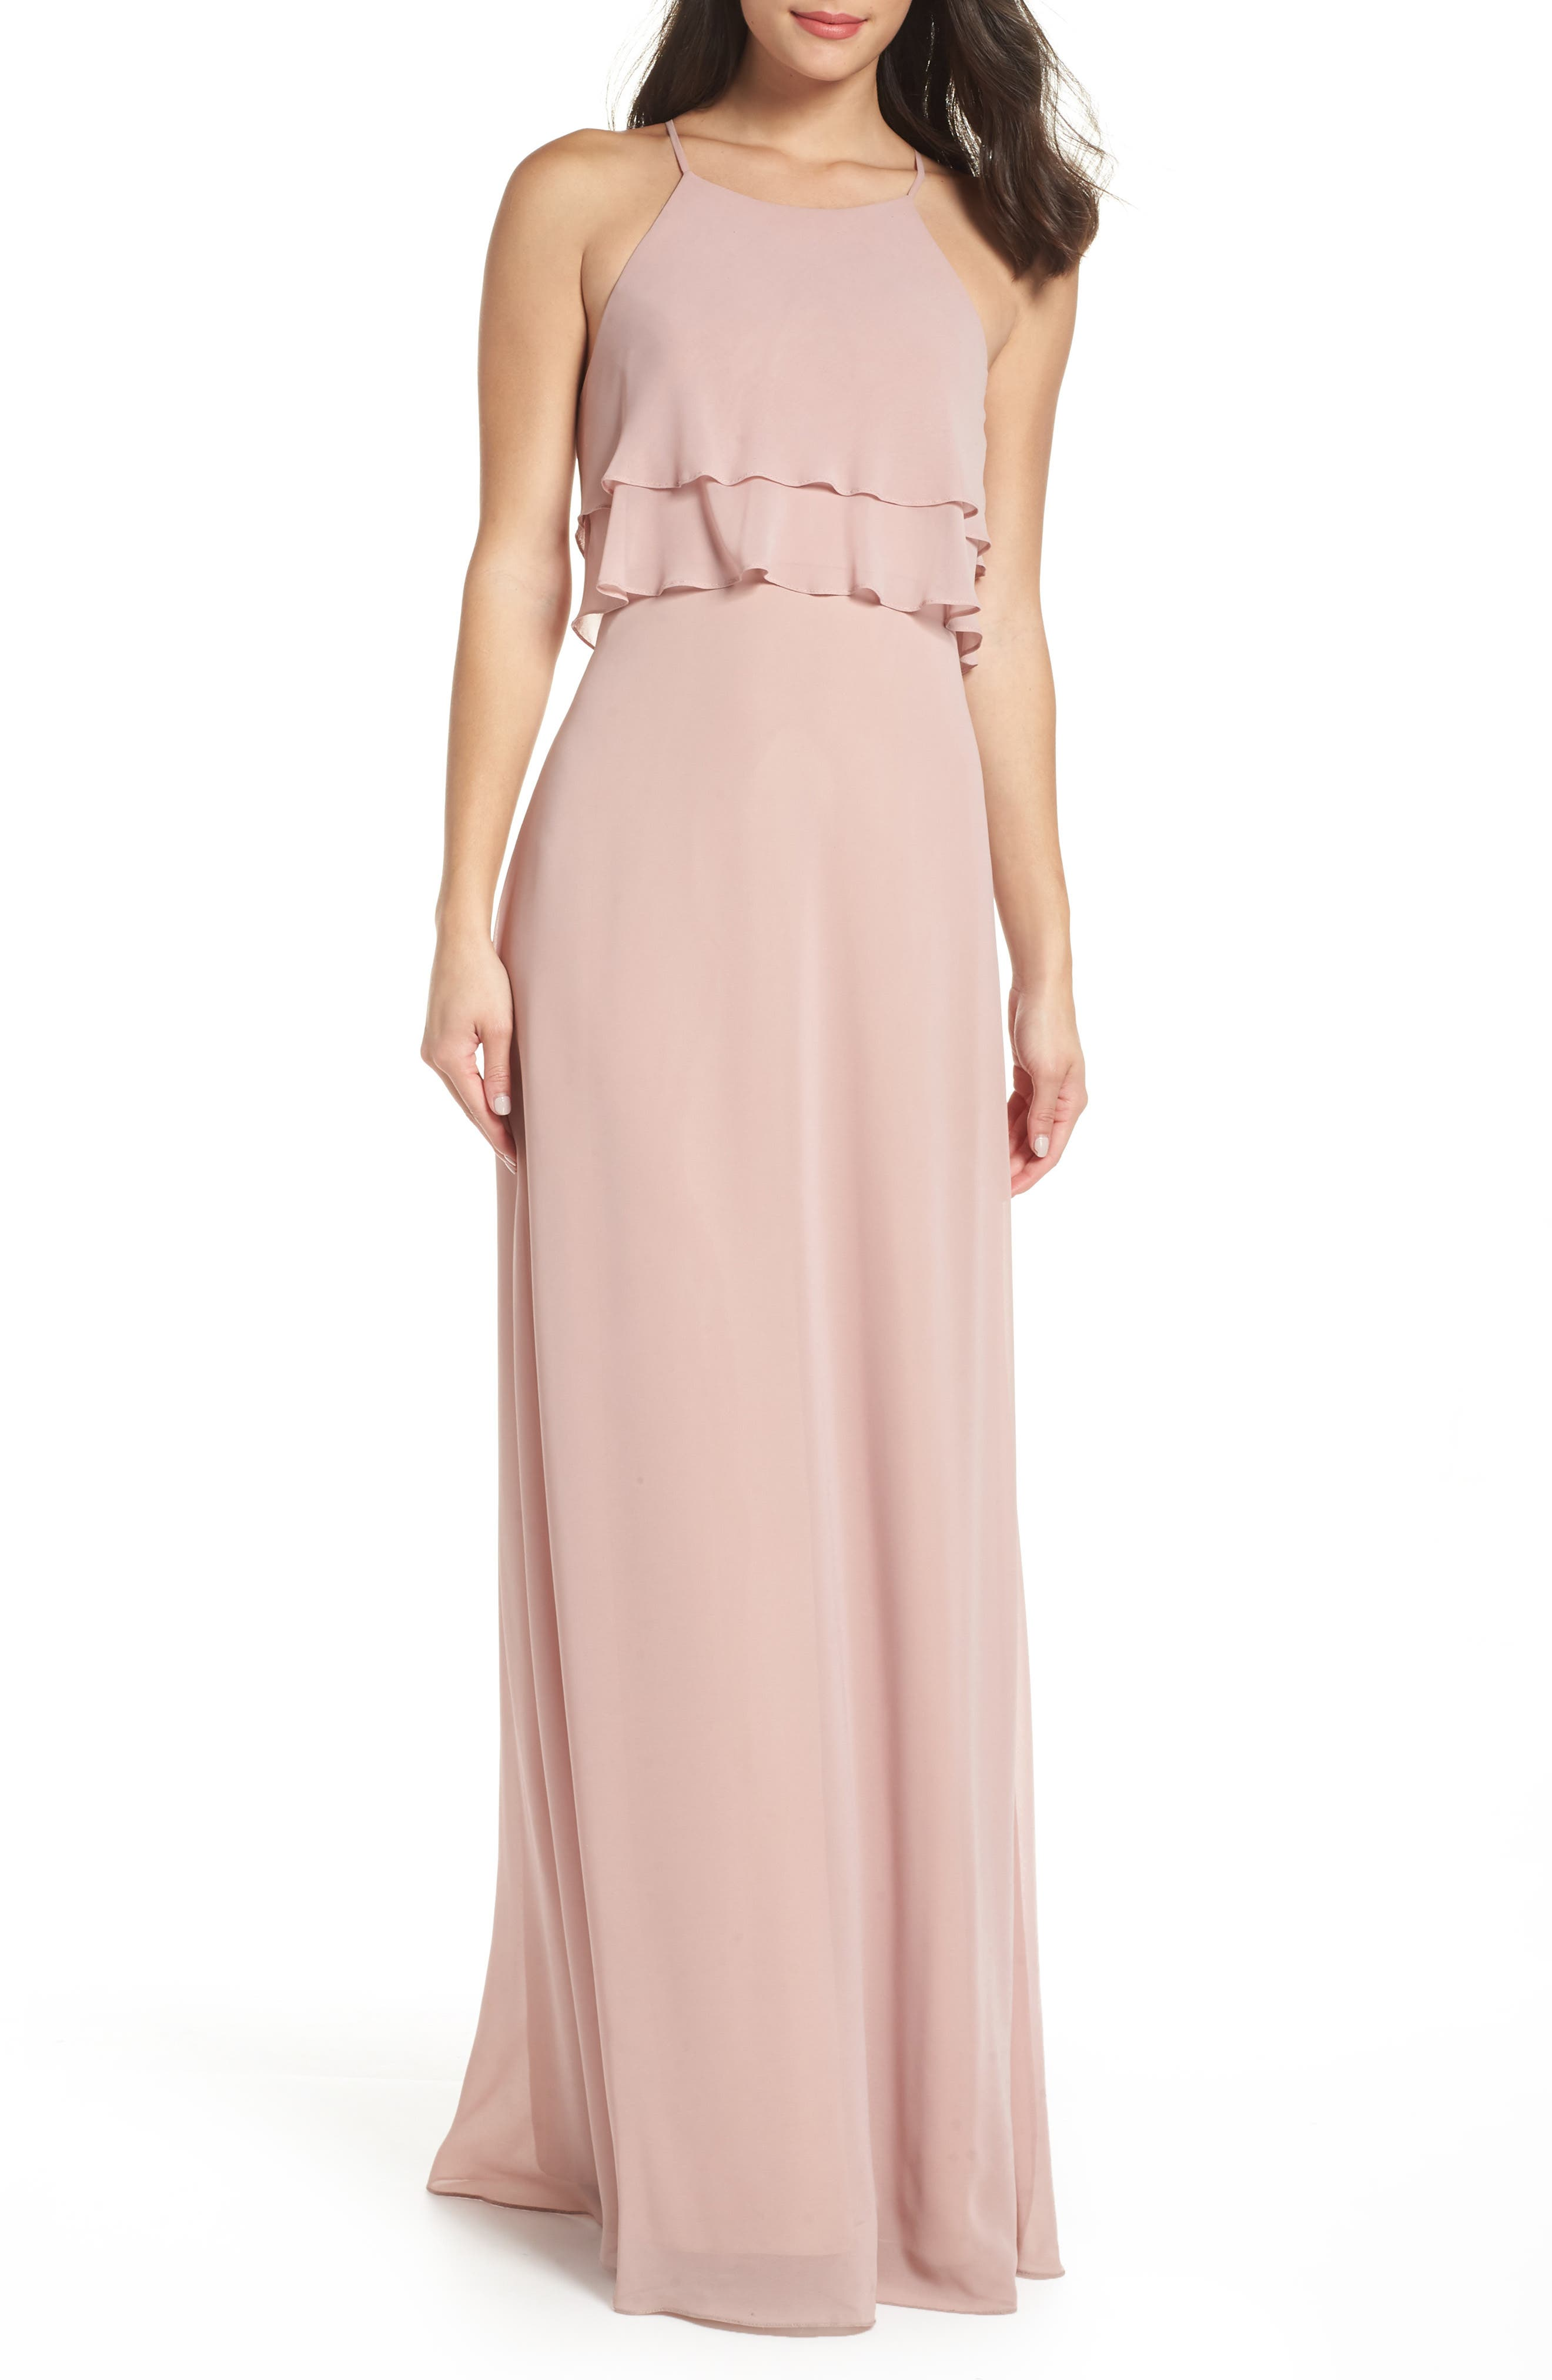 Charlie Ruffle Chiffon Gown,                             Main thumbnail 1, color,                             WHIPPED APRICOT